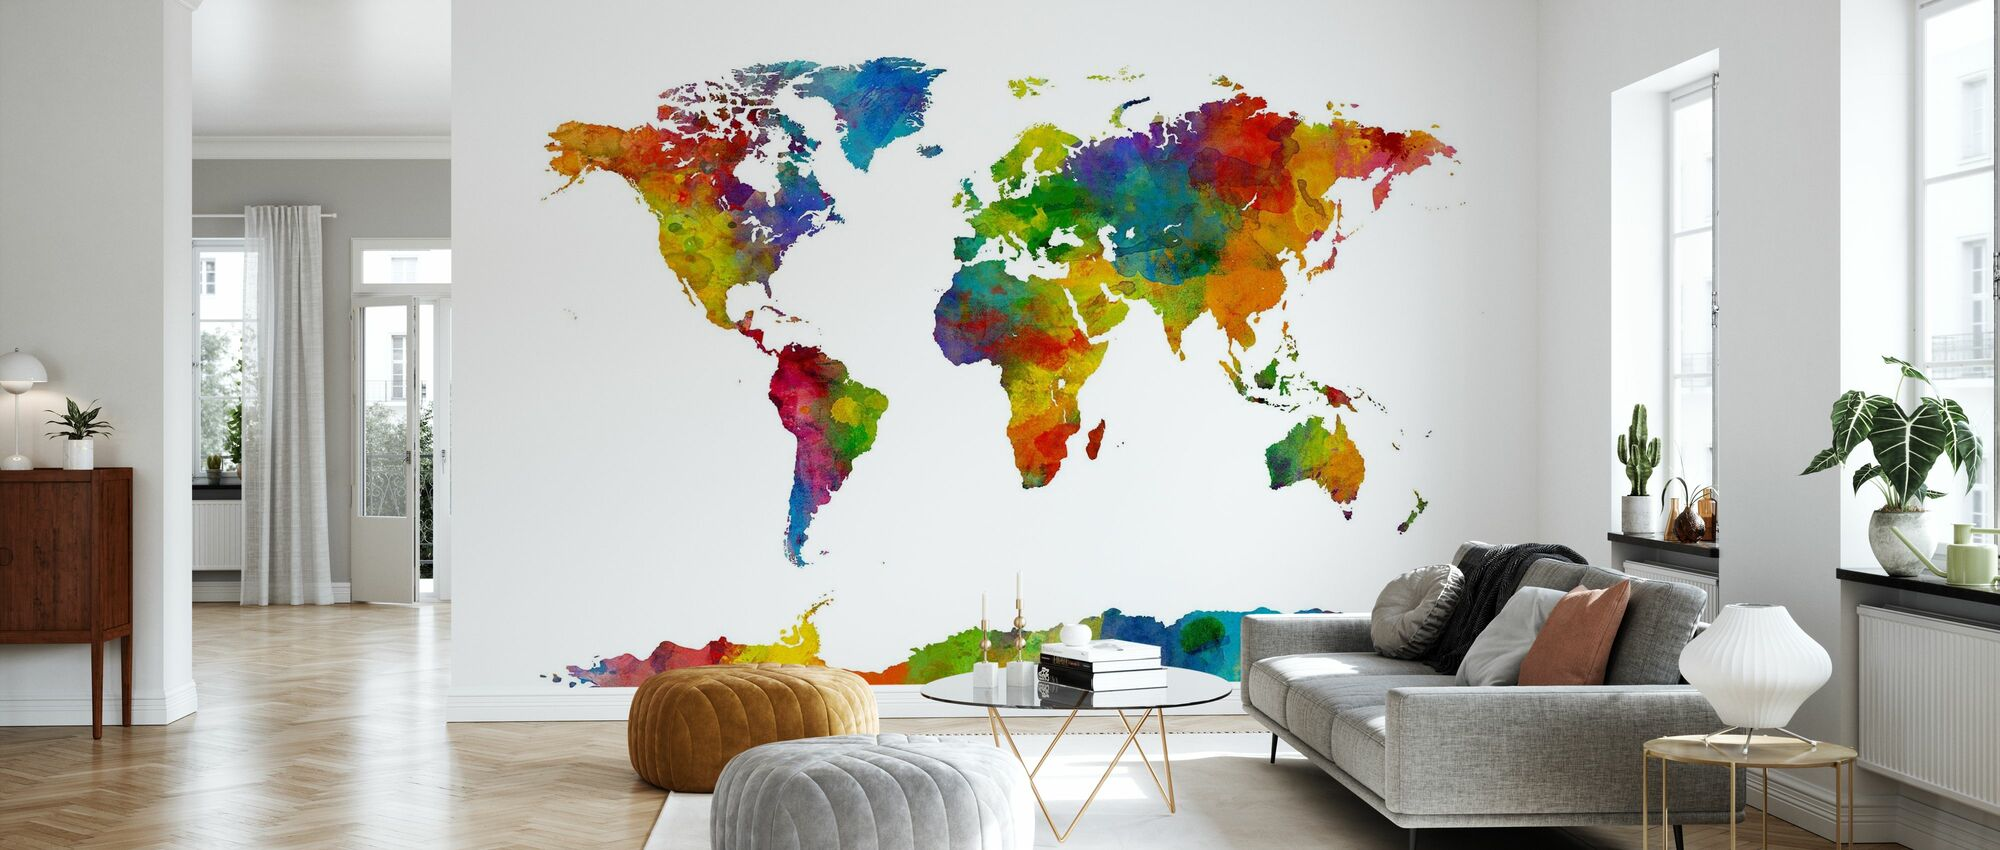 Watercolor World Map Multicolor 2 - Wallpaper - Living Room